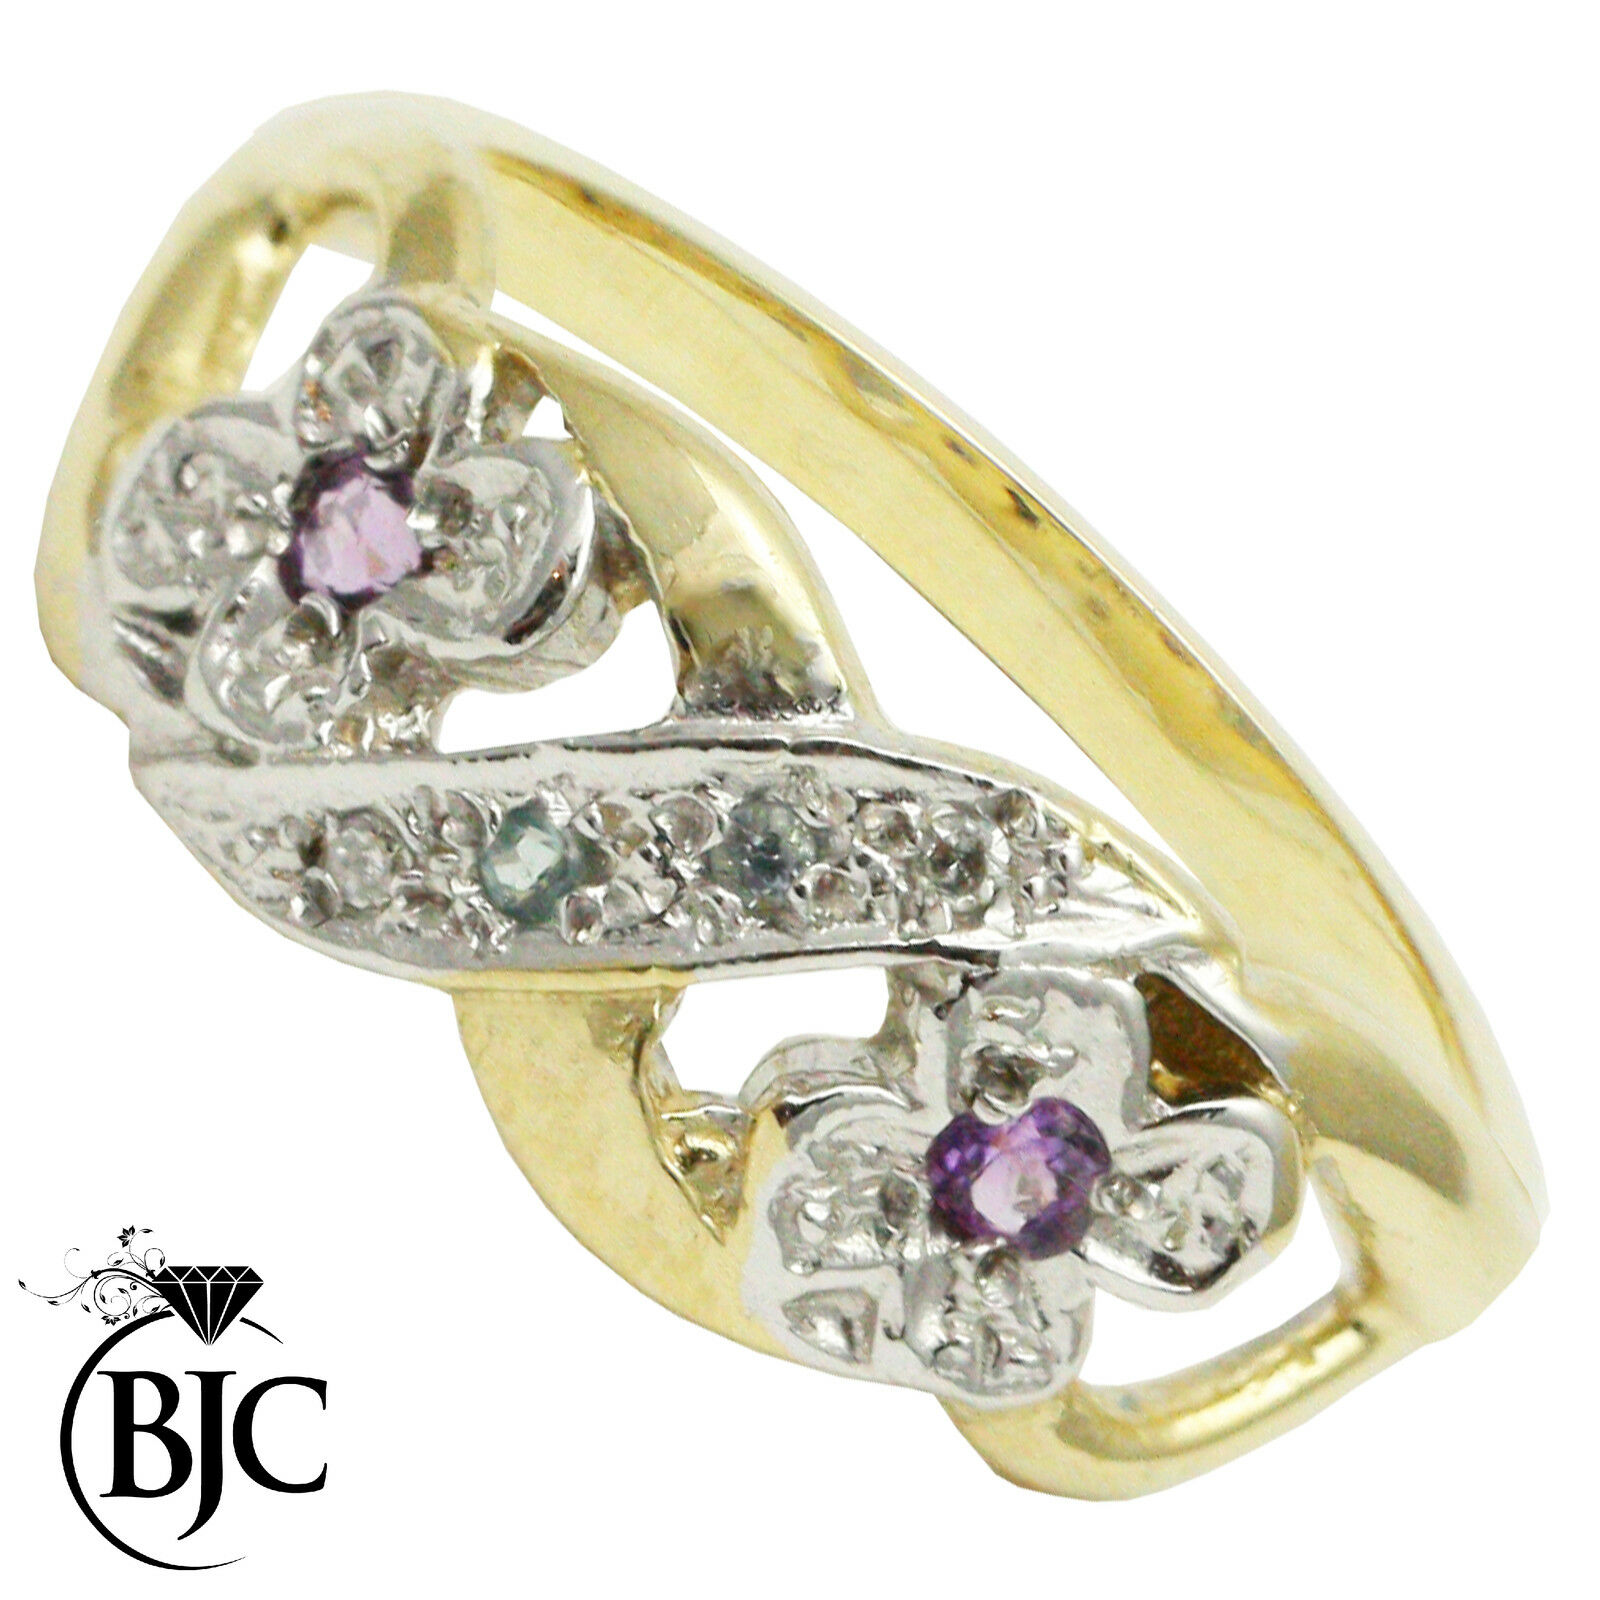 BJC® 9ct Yellow gold Amethyst bluee topaz & Diamond Cluster Flower ring R266